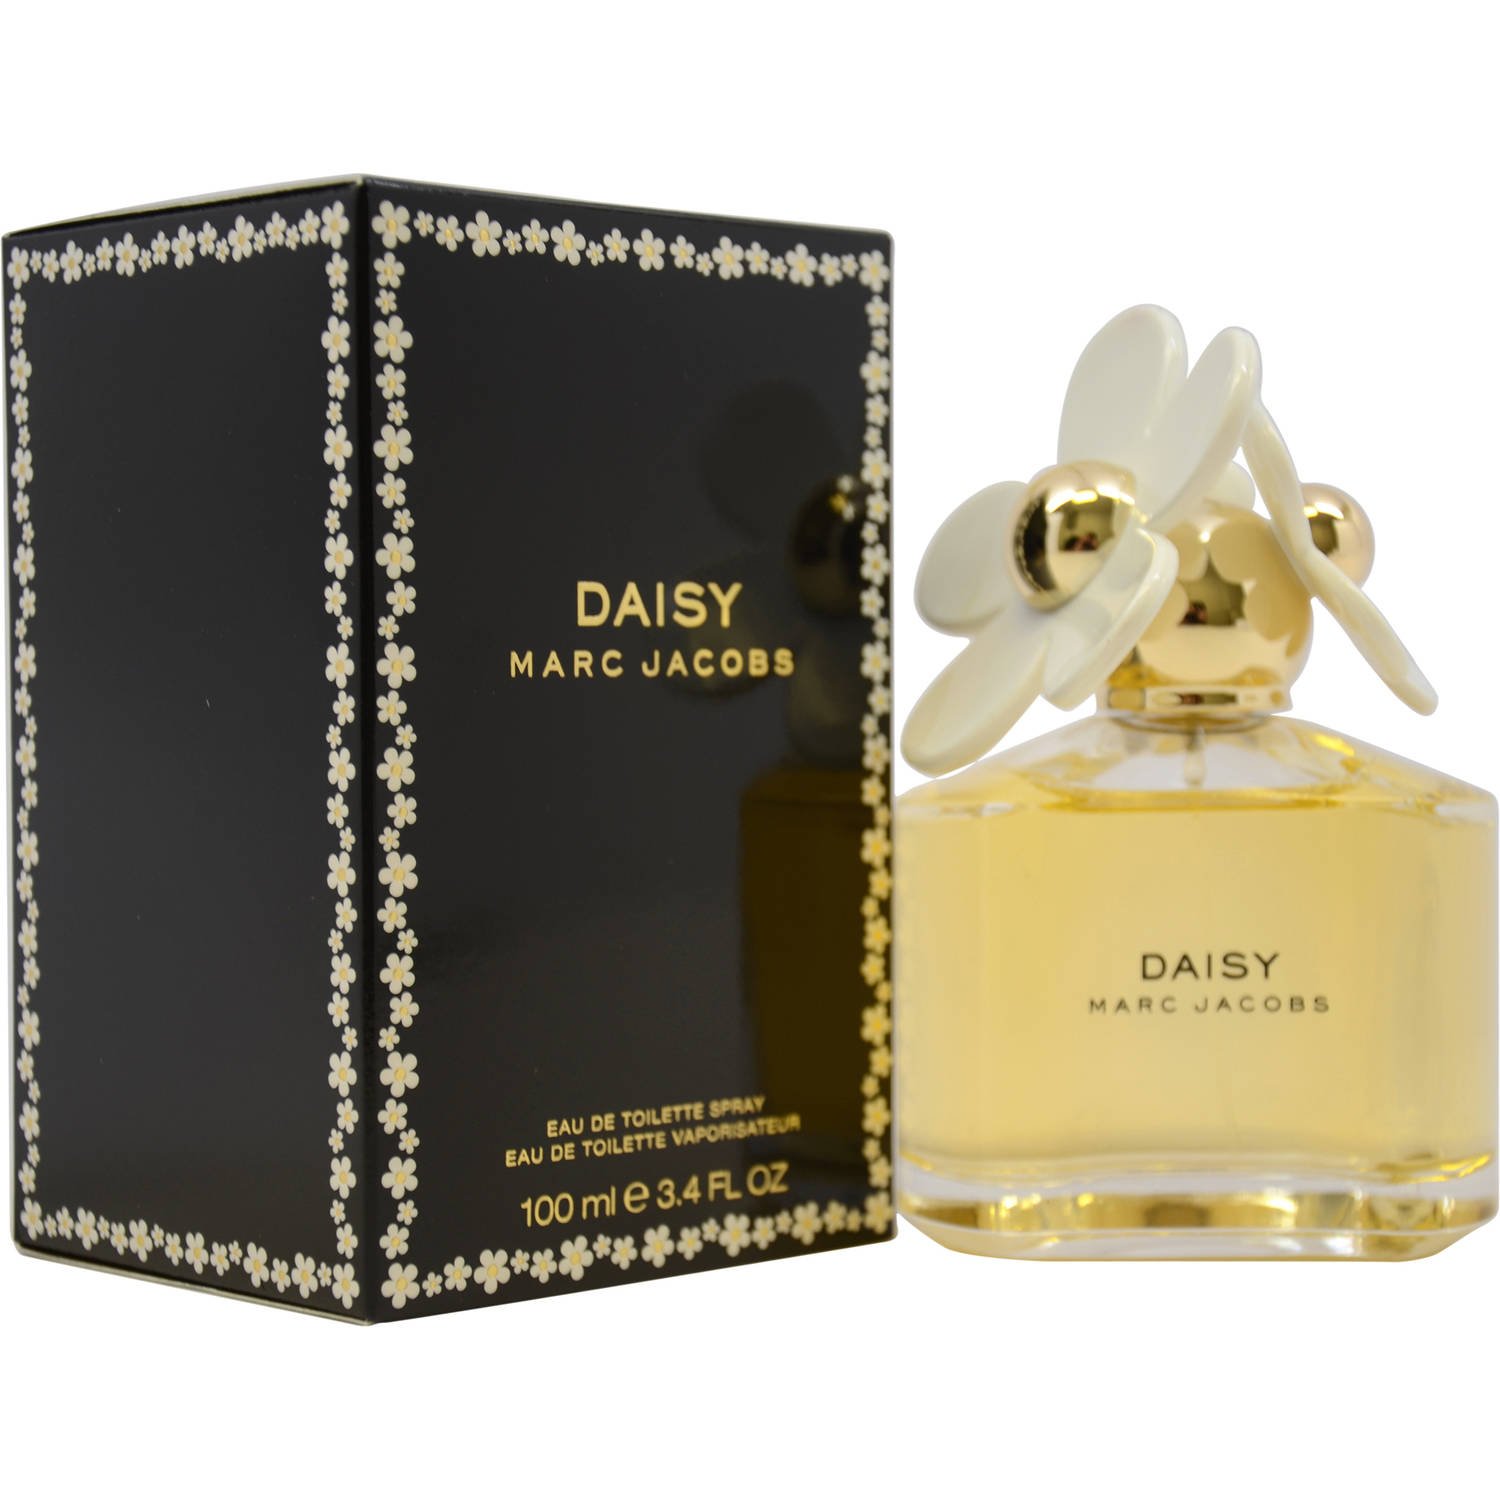 Marc Jacobs Daisy EDT Spray, 3.4 fl oz